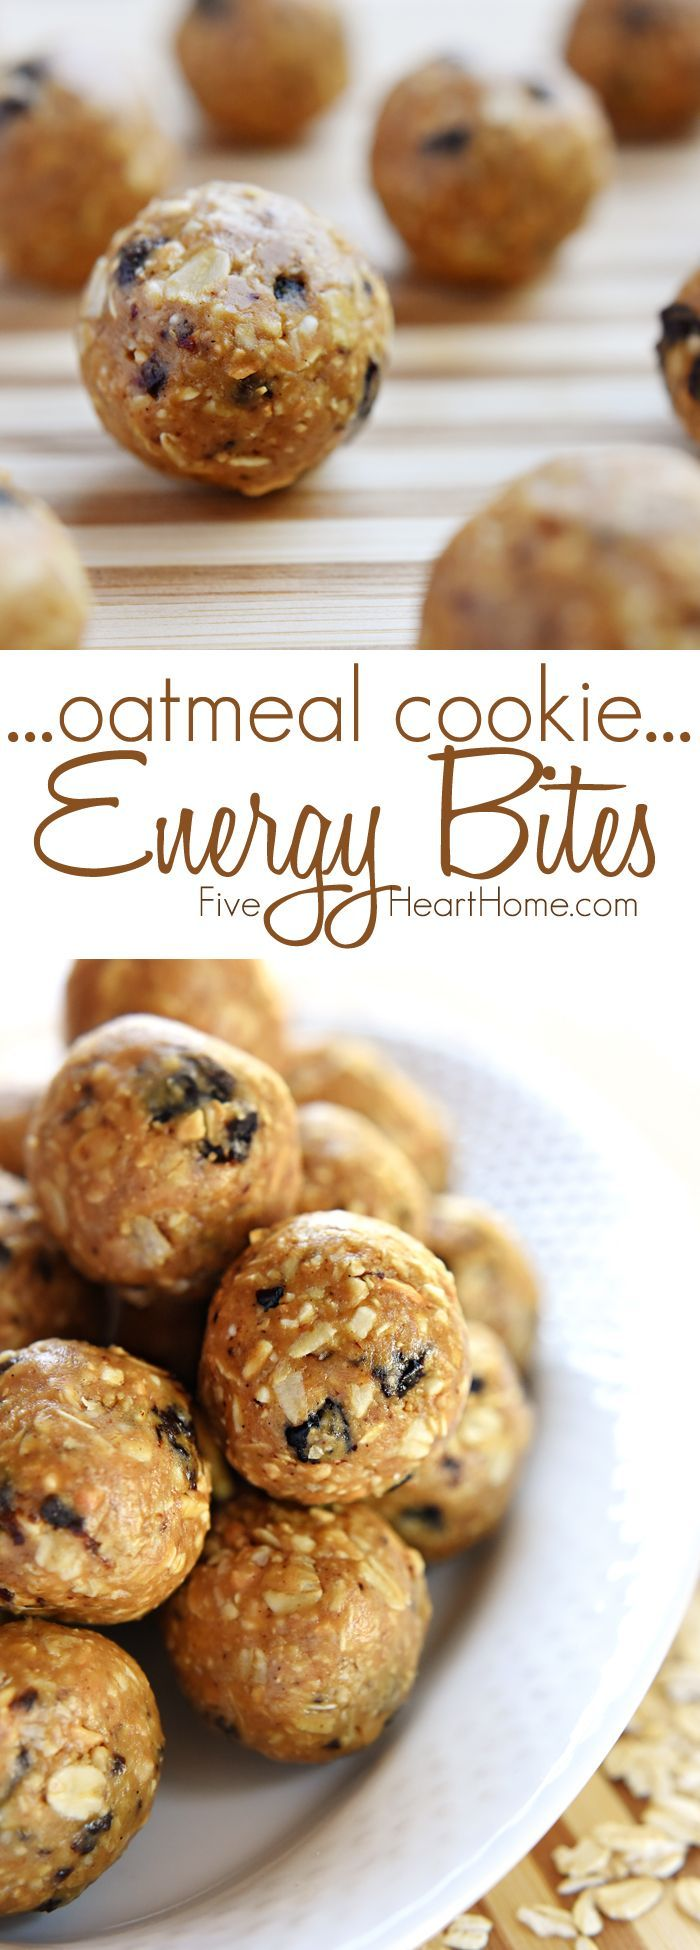 Oatmeal Cookie Energy Bites ~ tasty, no-bake balls combining oats, ground nuts, dried fruit, nut butter, and honey...perfect as a portable breakfast-on-the-go, a protein-packed snack, or a no-guilt-necessary sweet treat!   FiveHeartHome.com